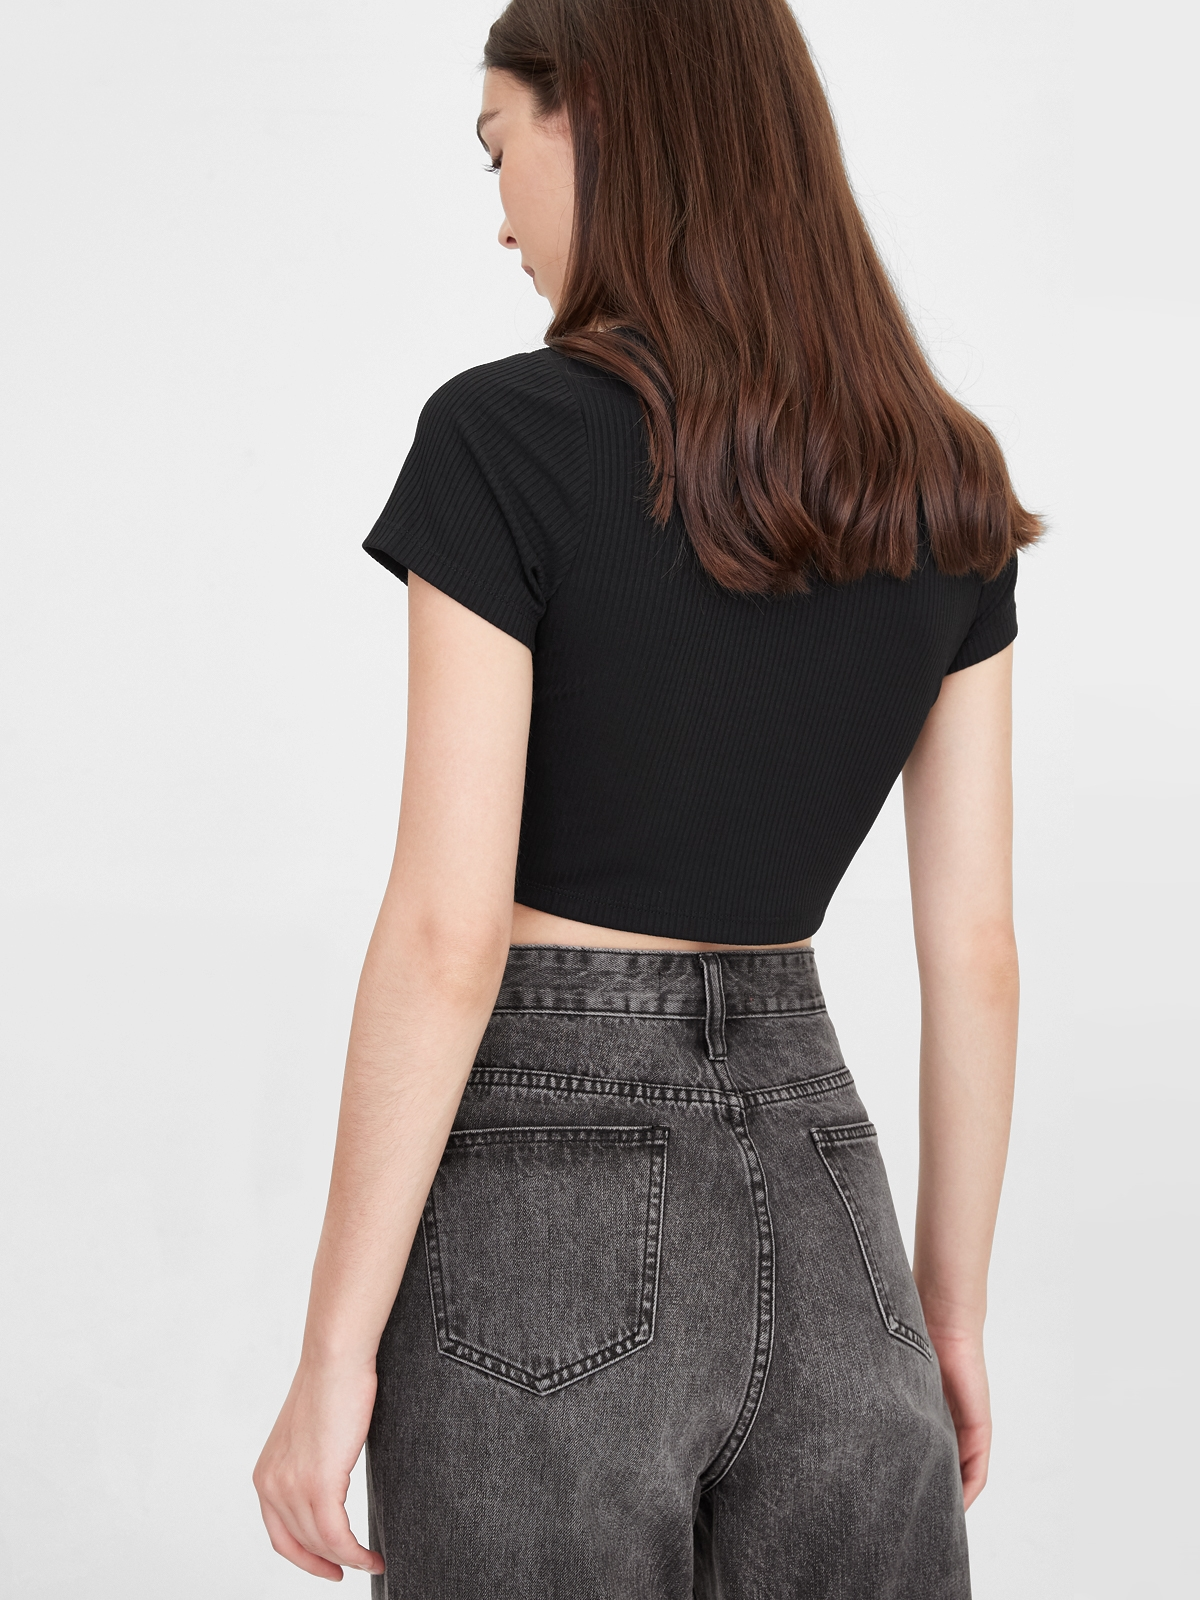 Rounded Cut Out Crop Top Black